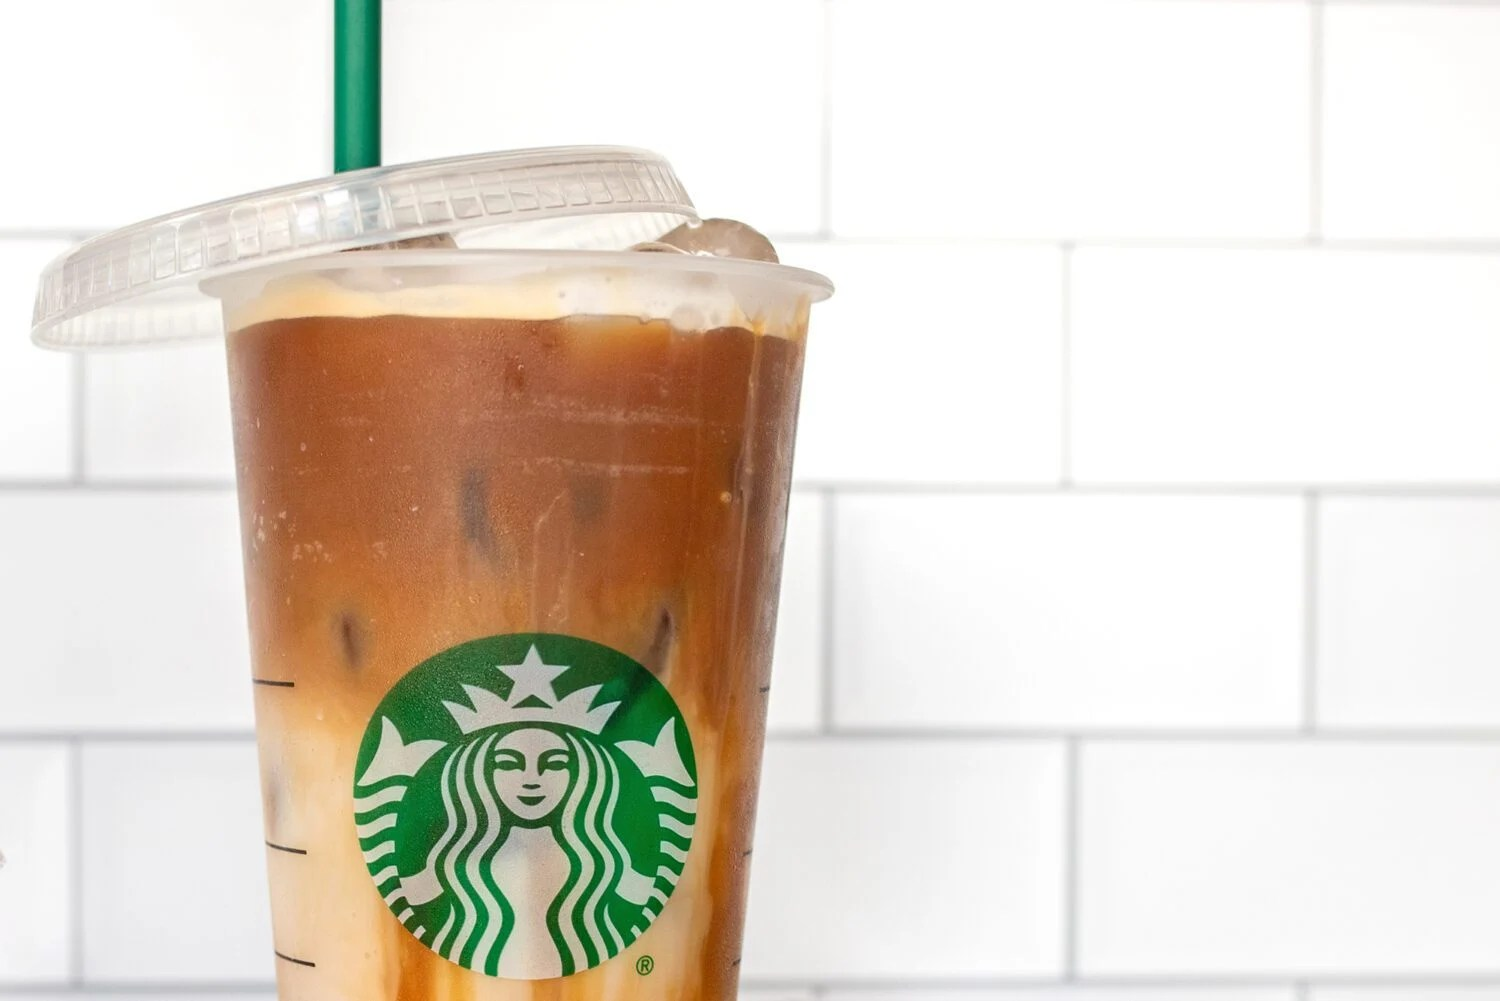 Starbucks cup with lid off